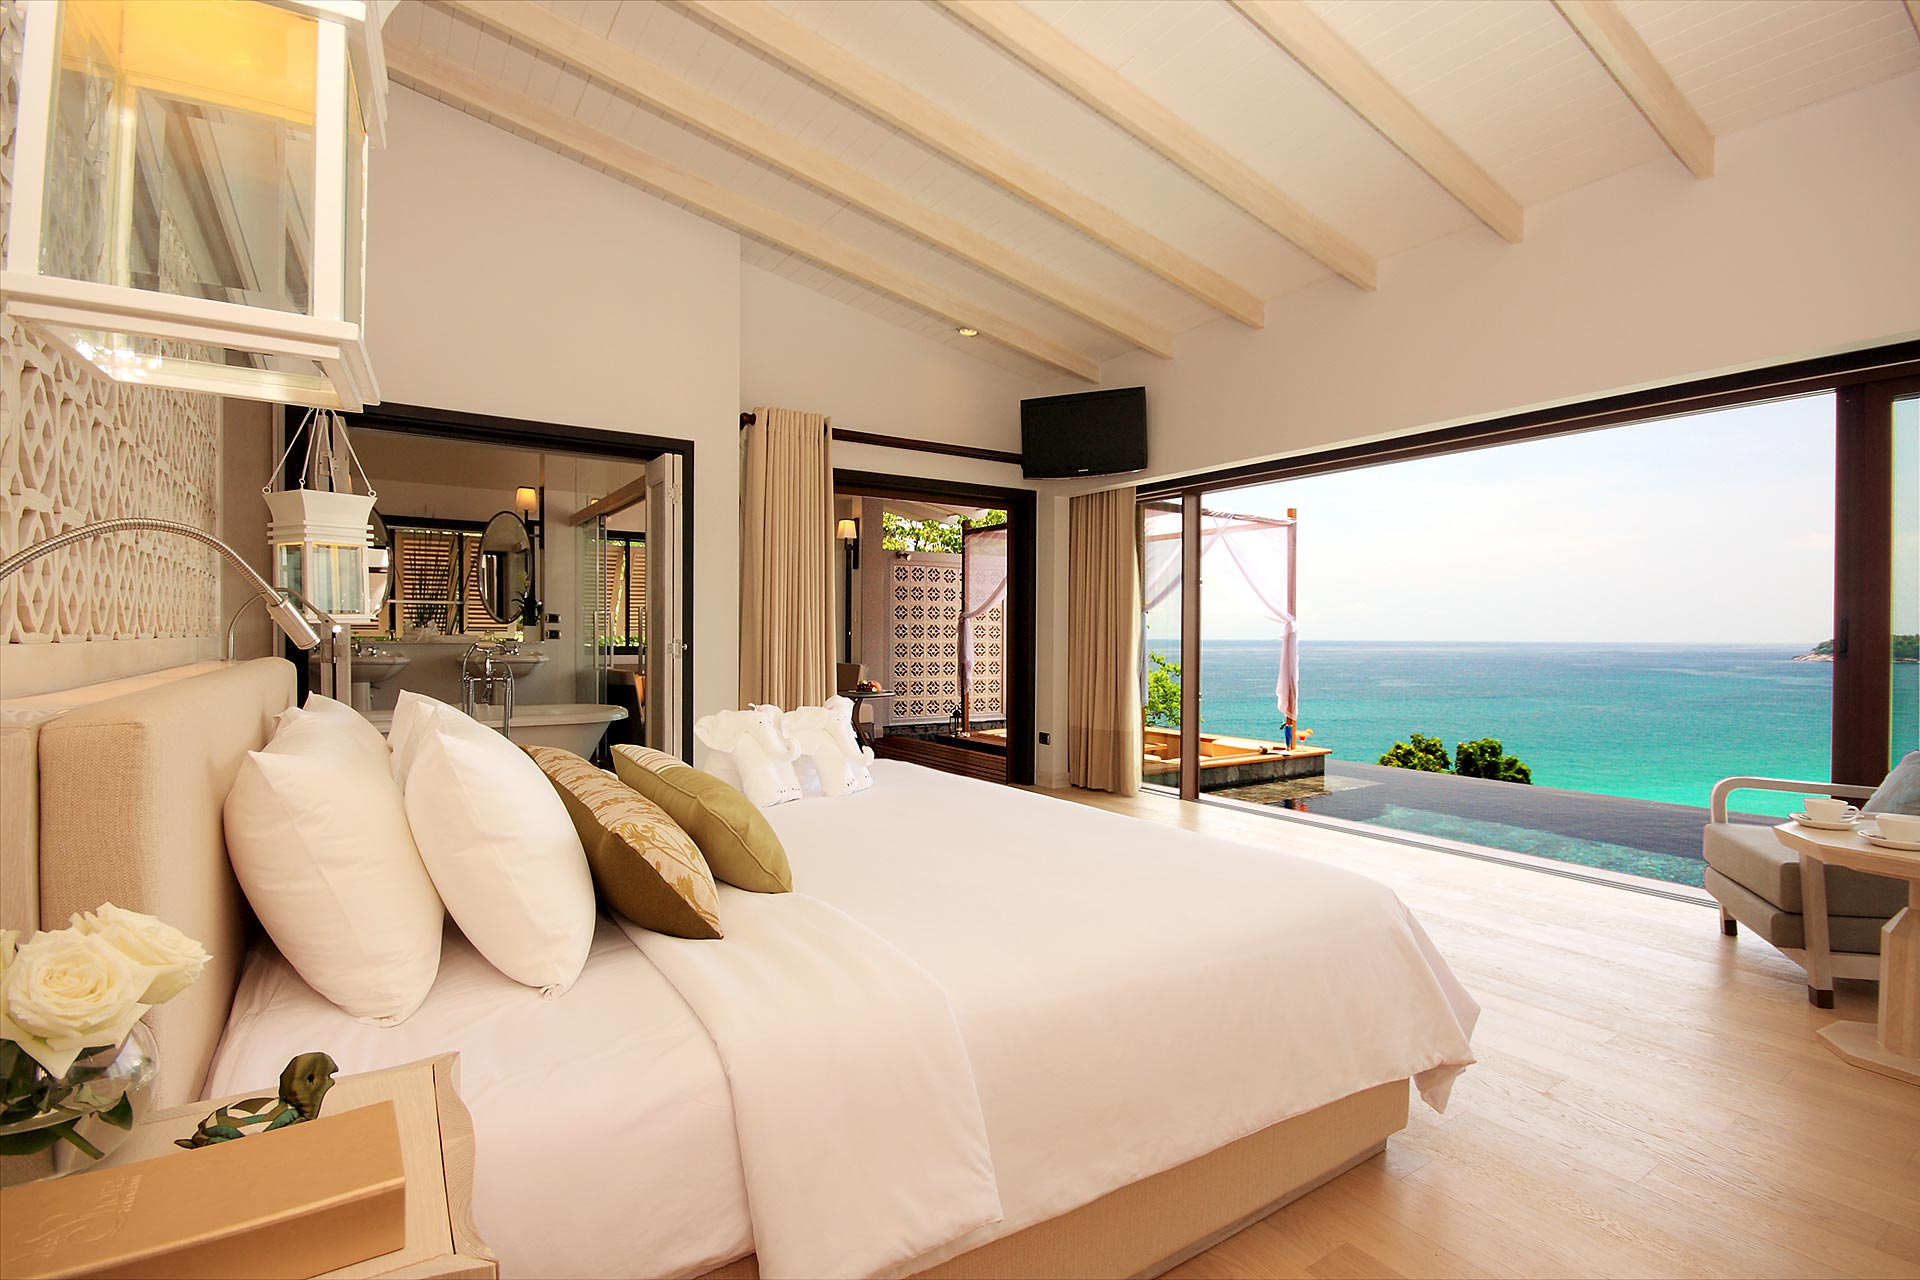 Hotel room with floor-to-ceiling windows and ocean view